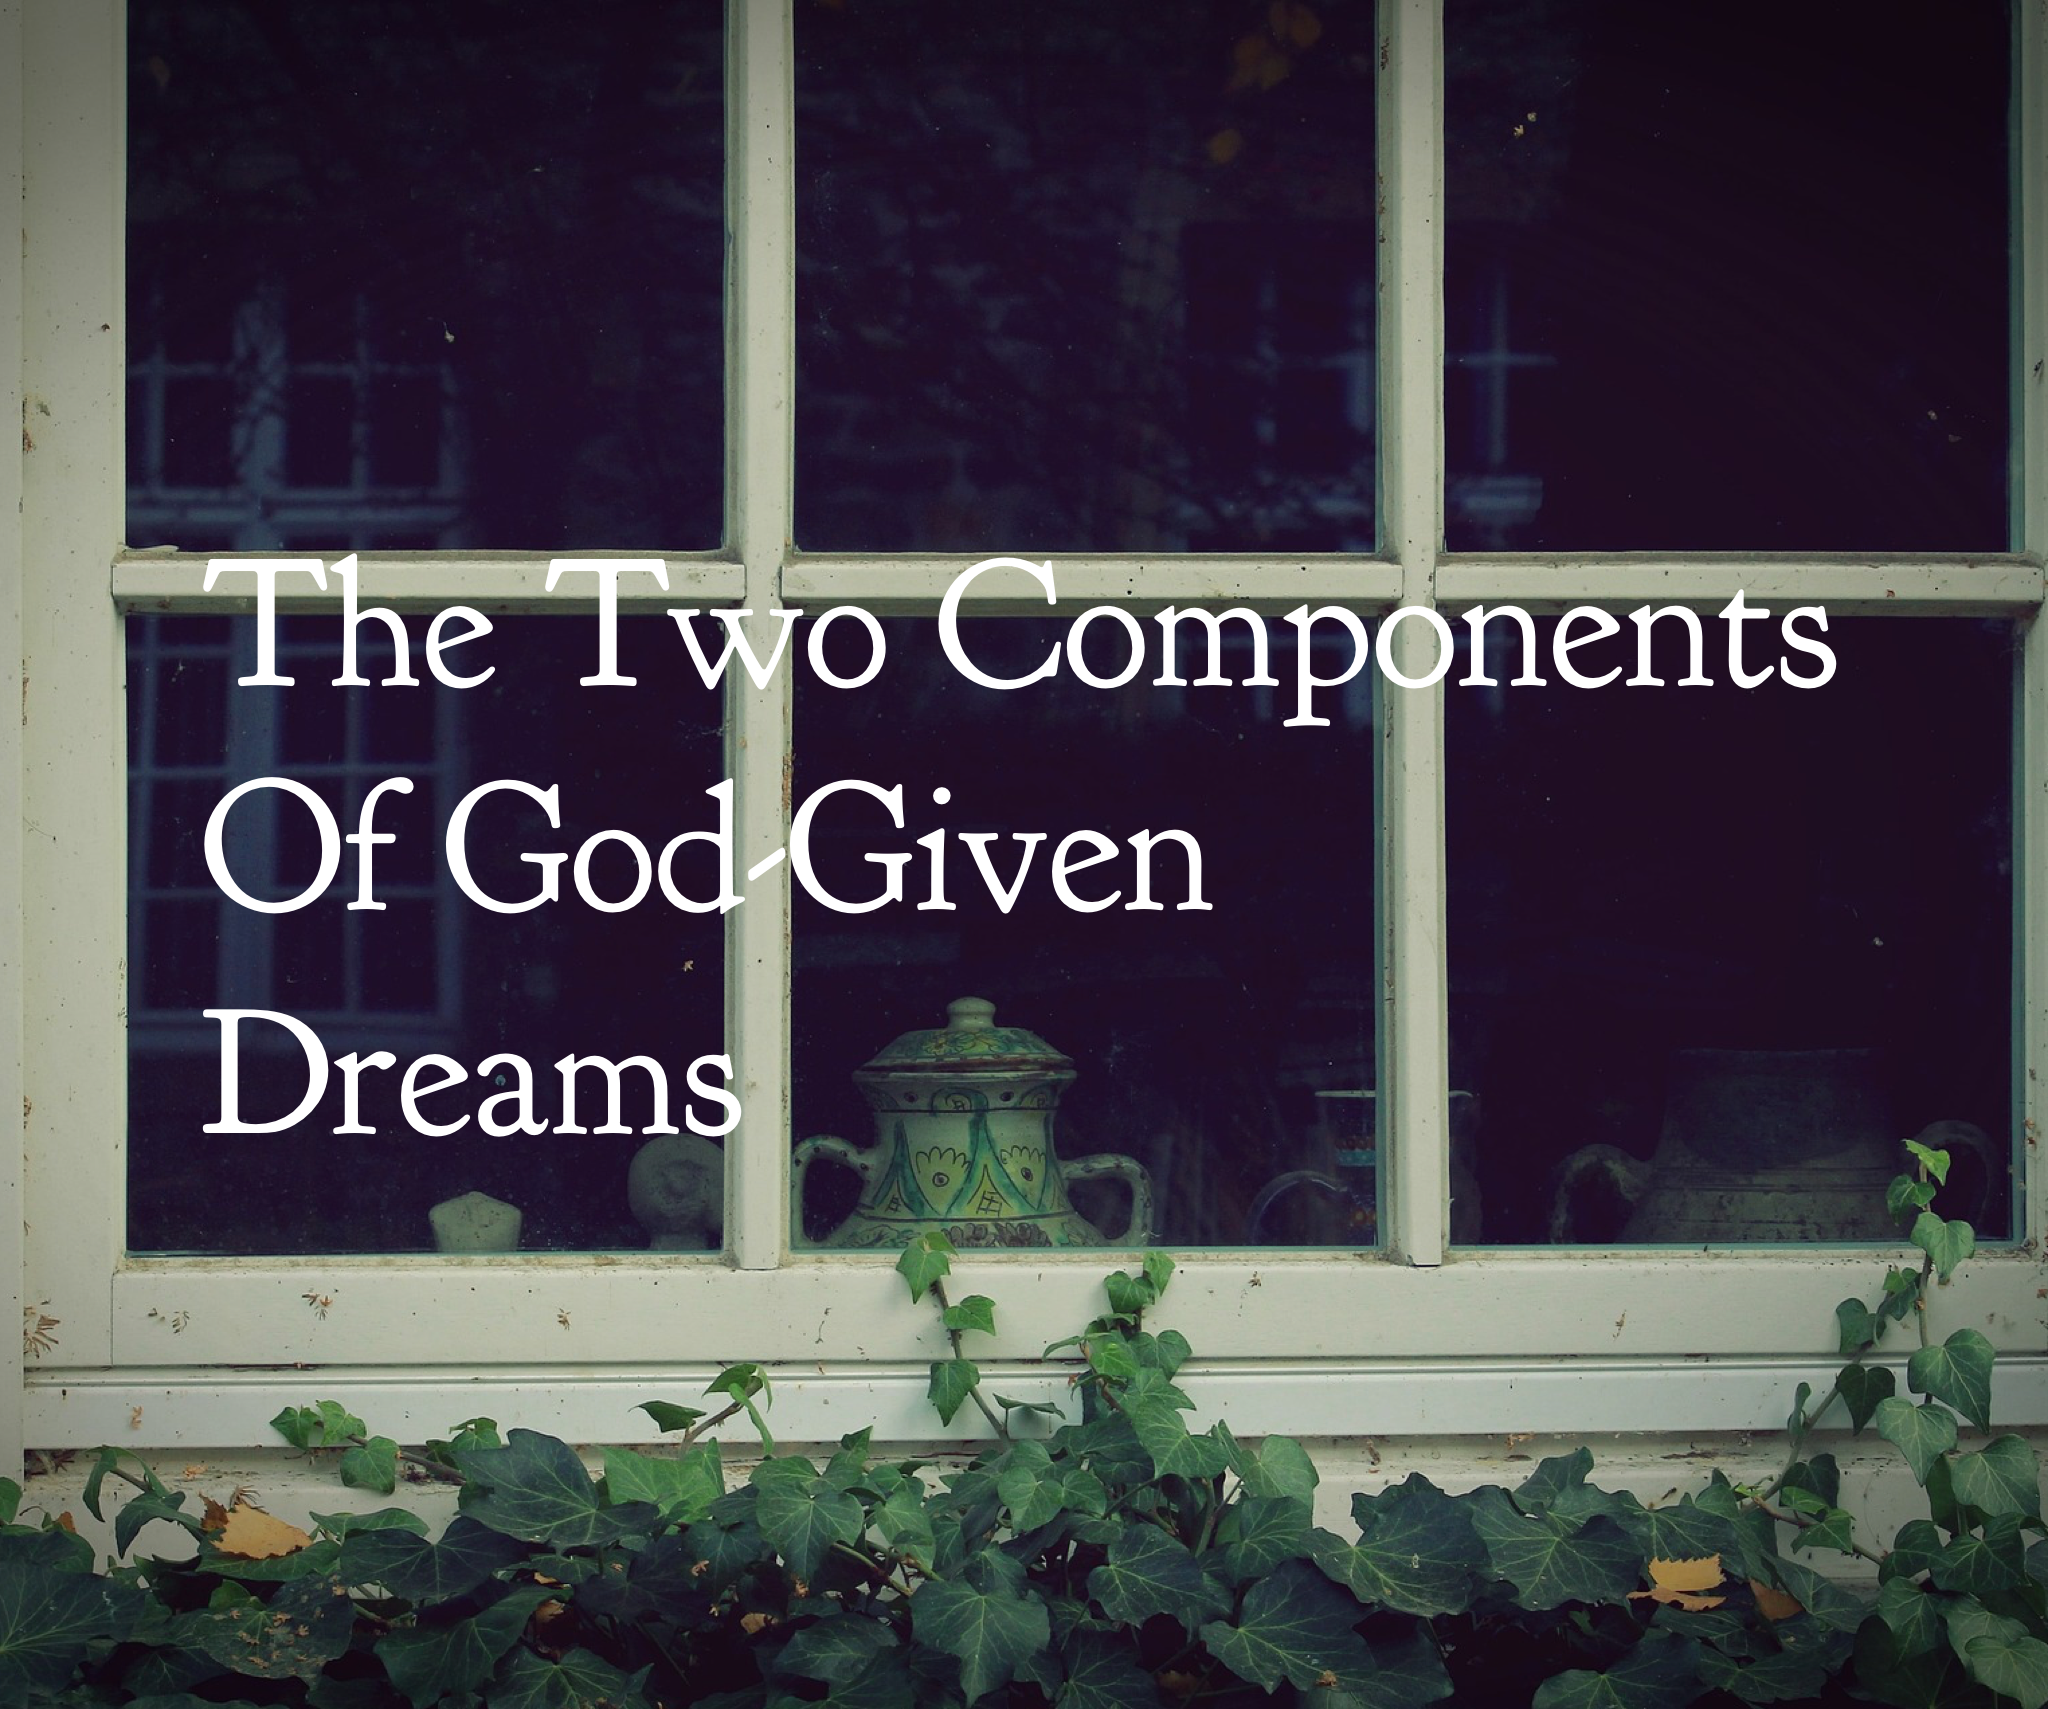 Dream components